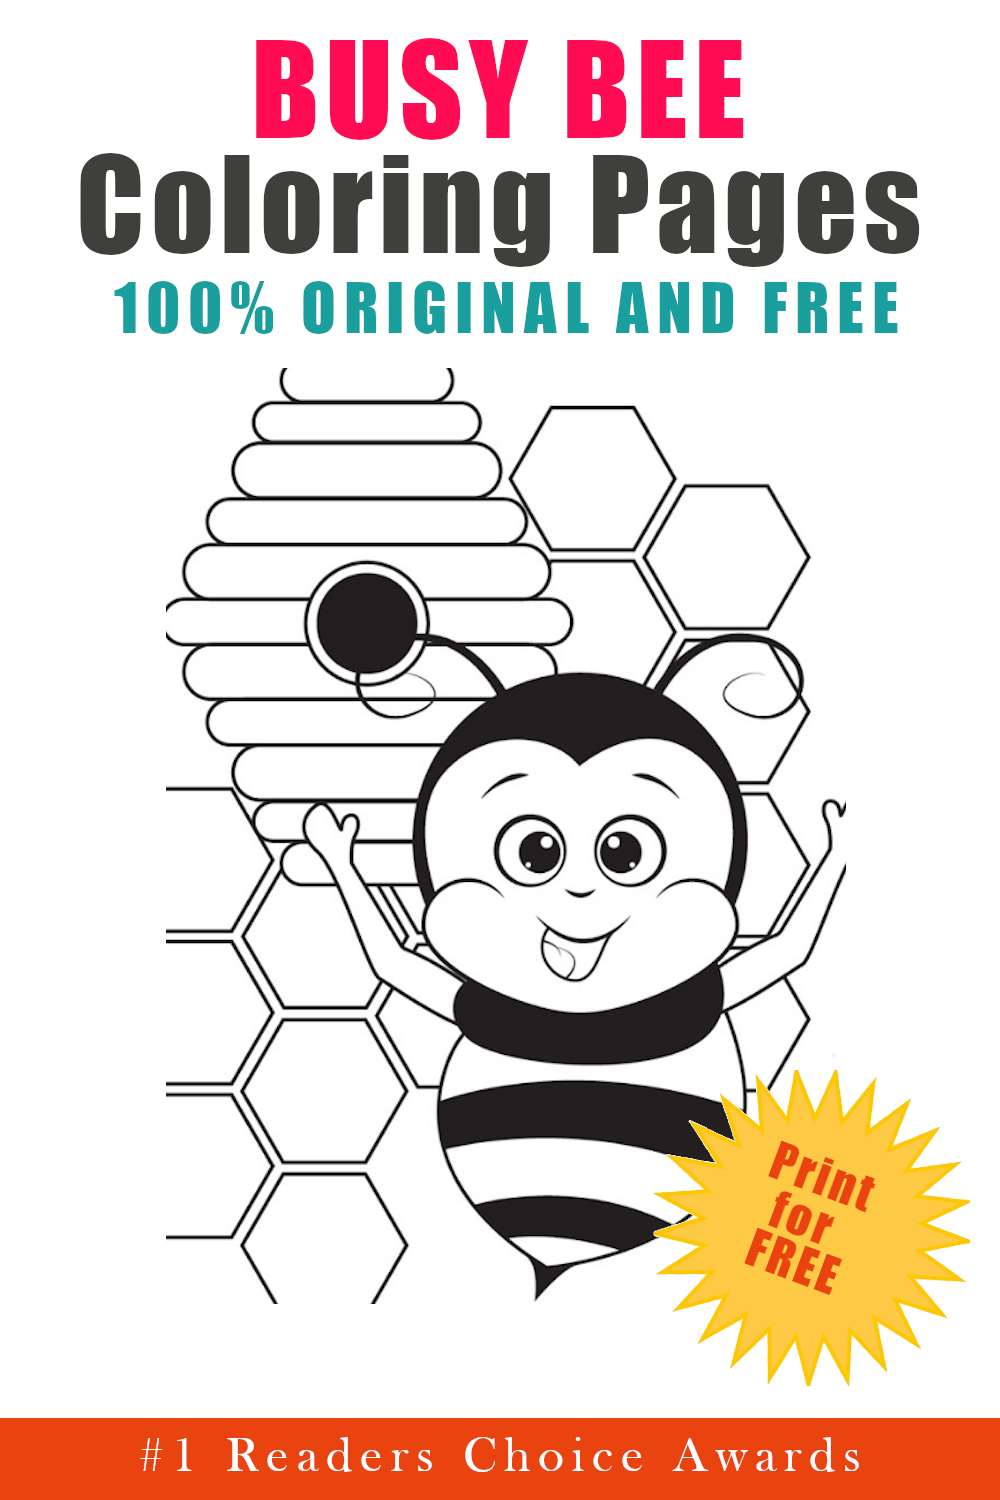 original and free busy bee coloring pages